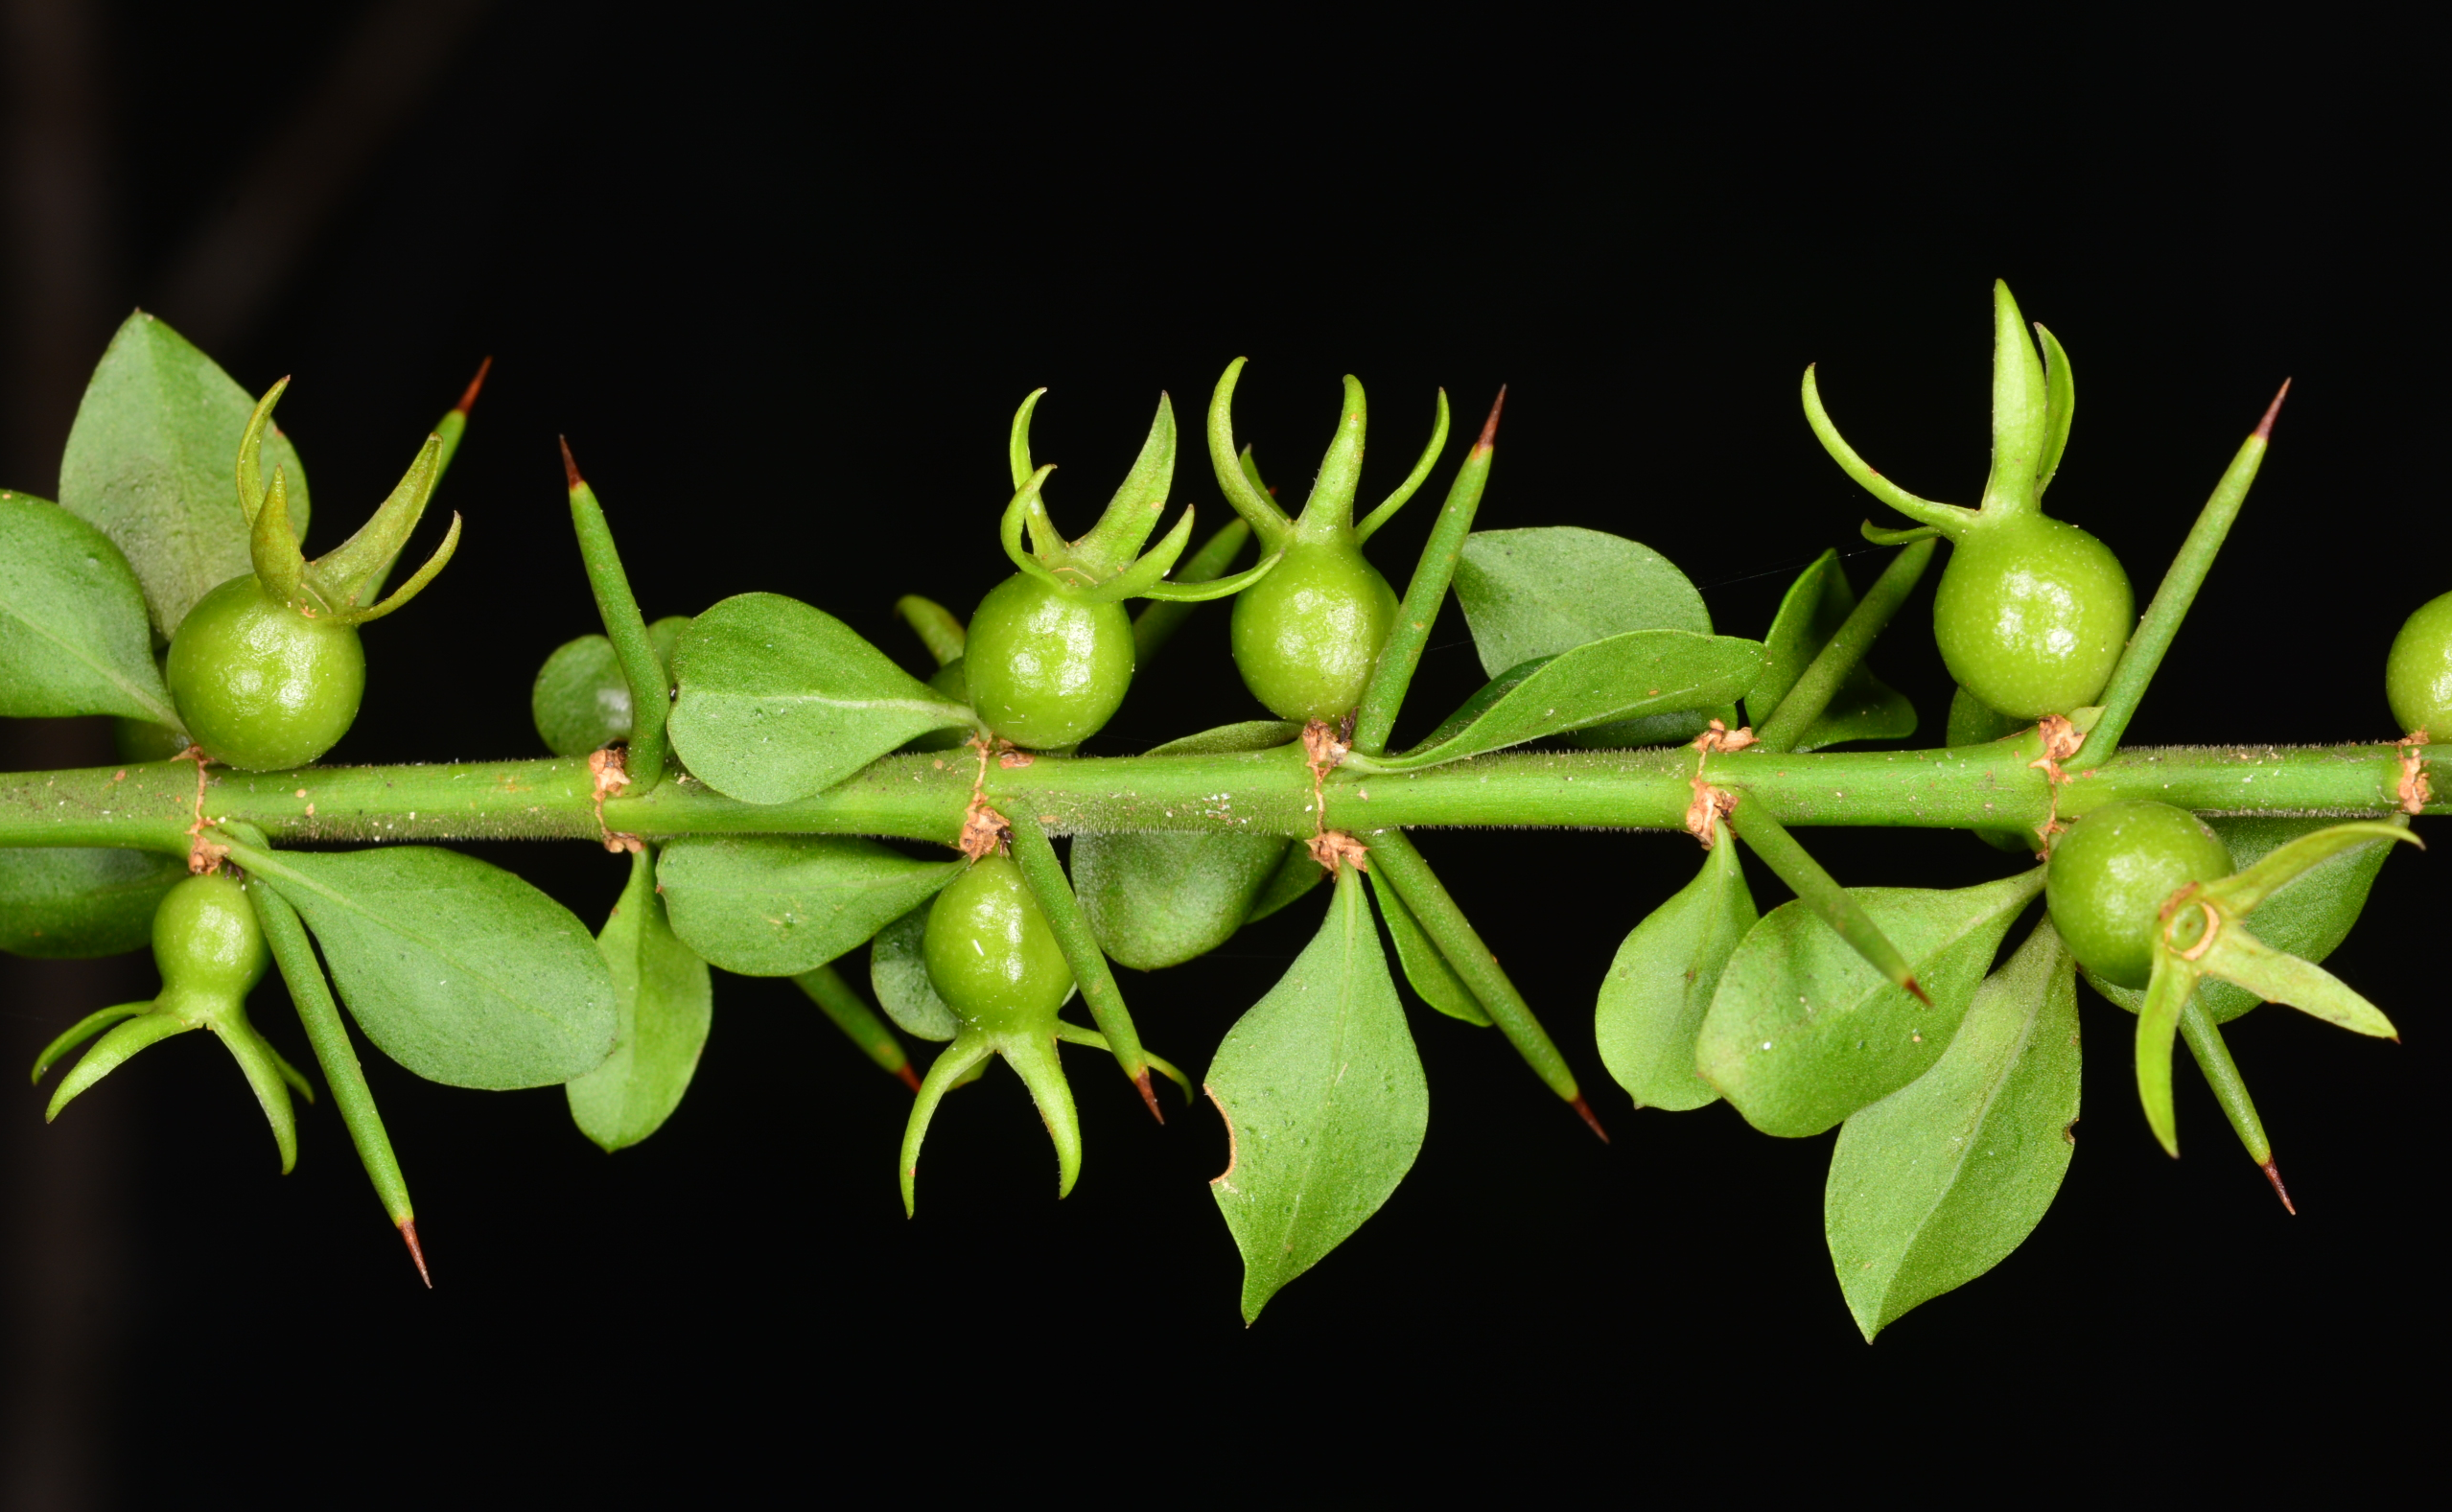 Fruits of tropical lilythorn (Catesbaea melanocarpa), an endangered shrub endemic to Puerto Rico and the island of St. Croix in the U.S. Virgin Islands.